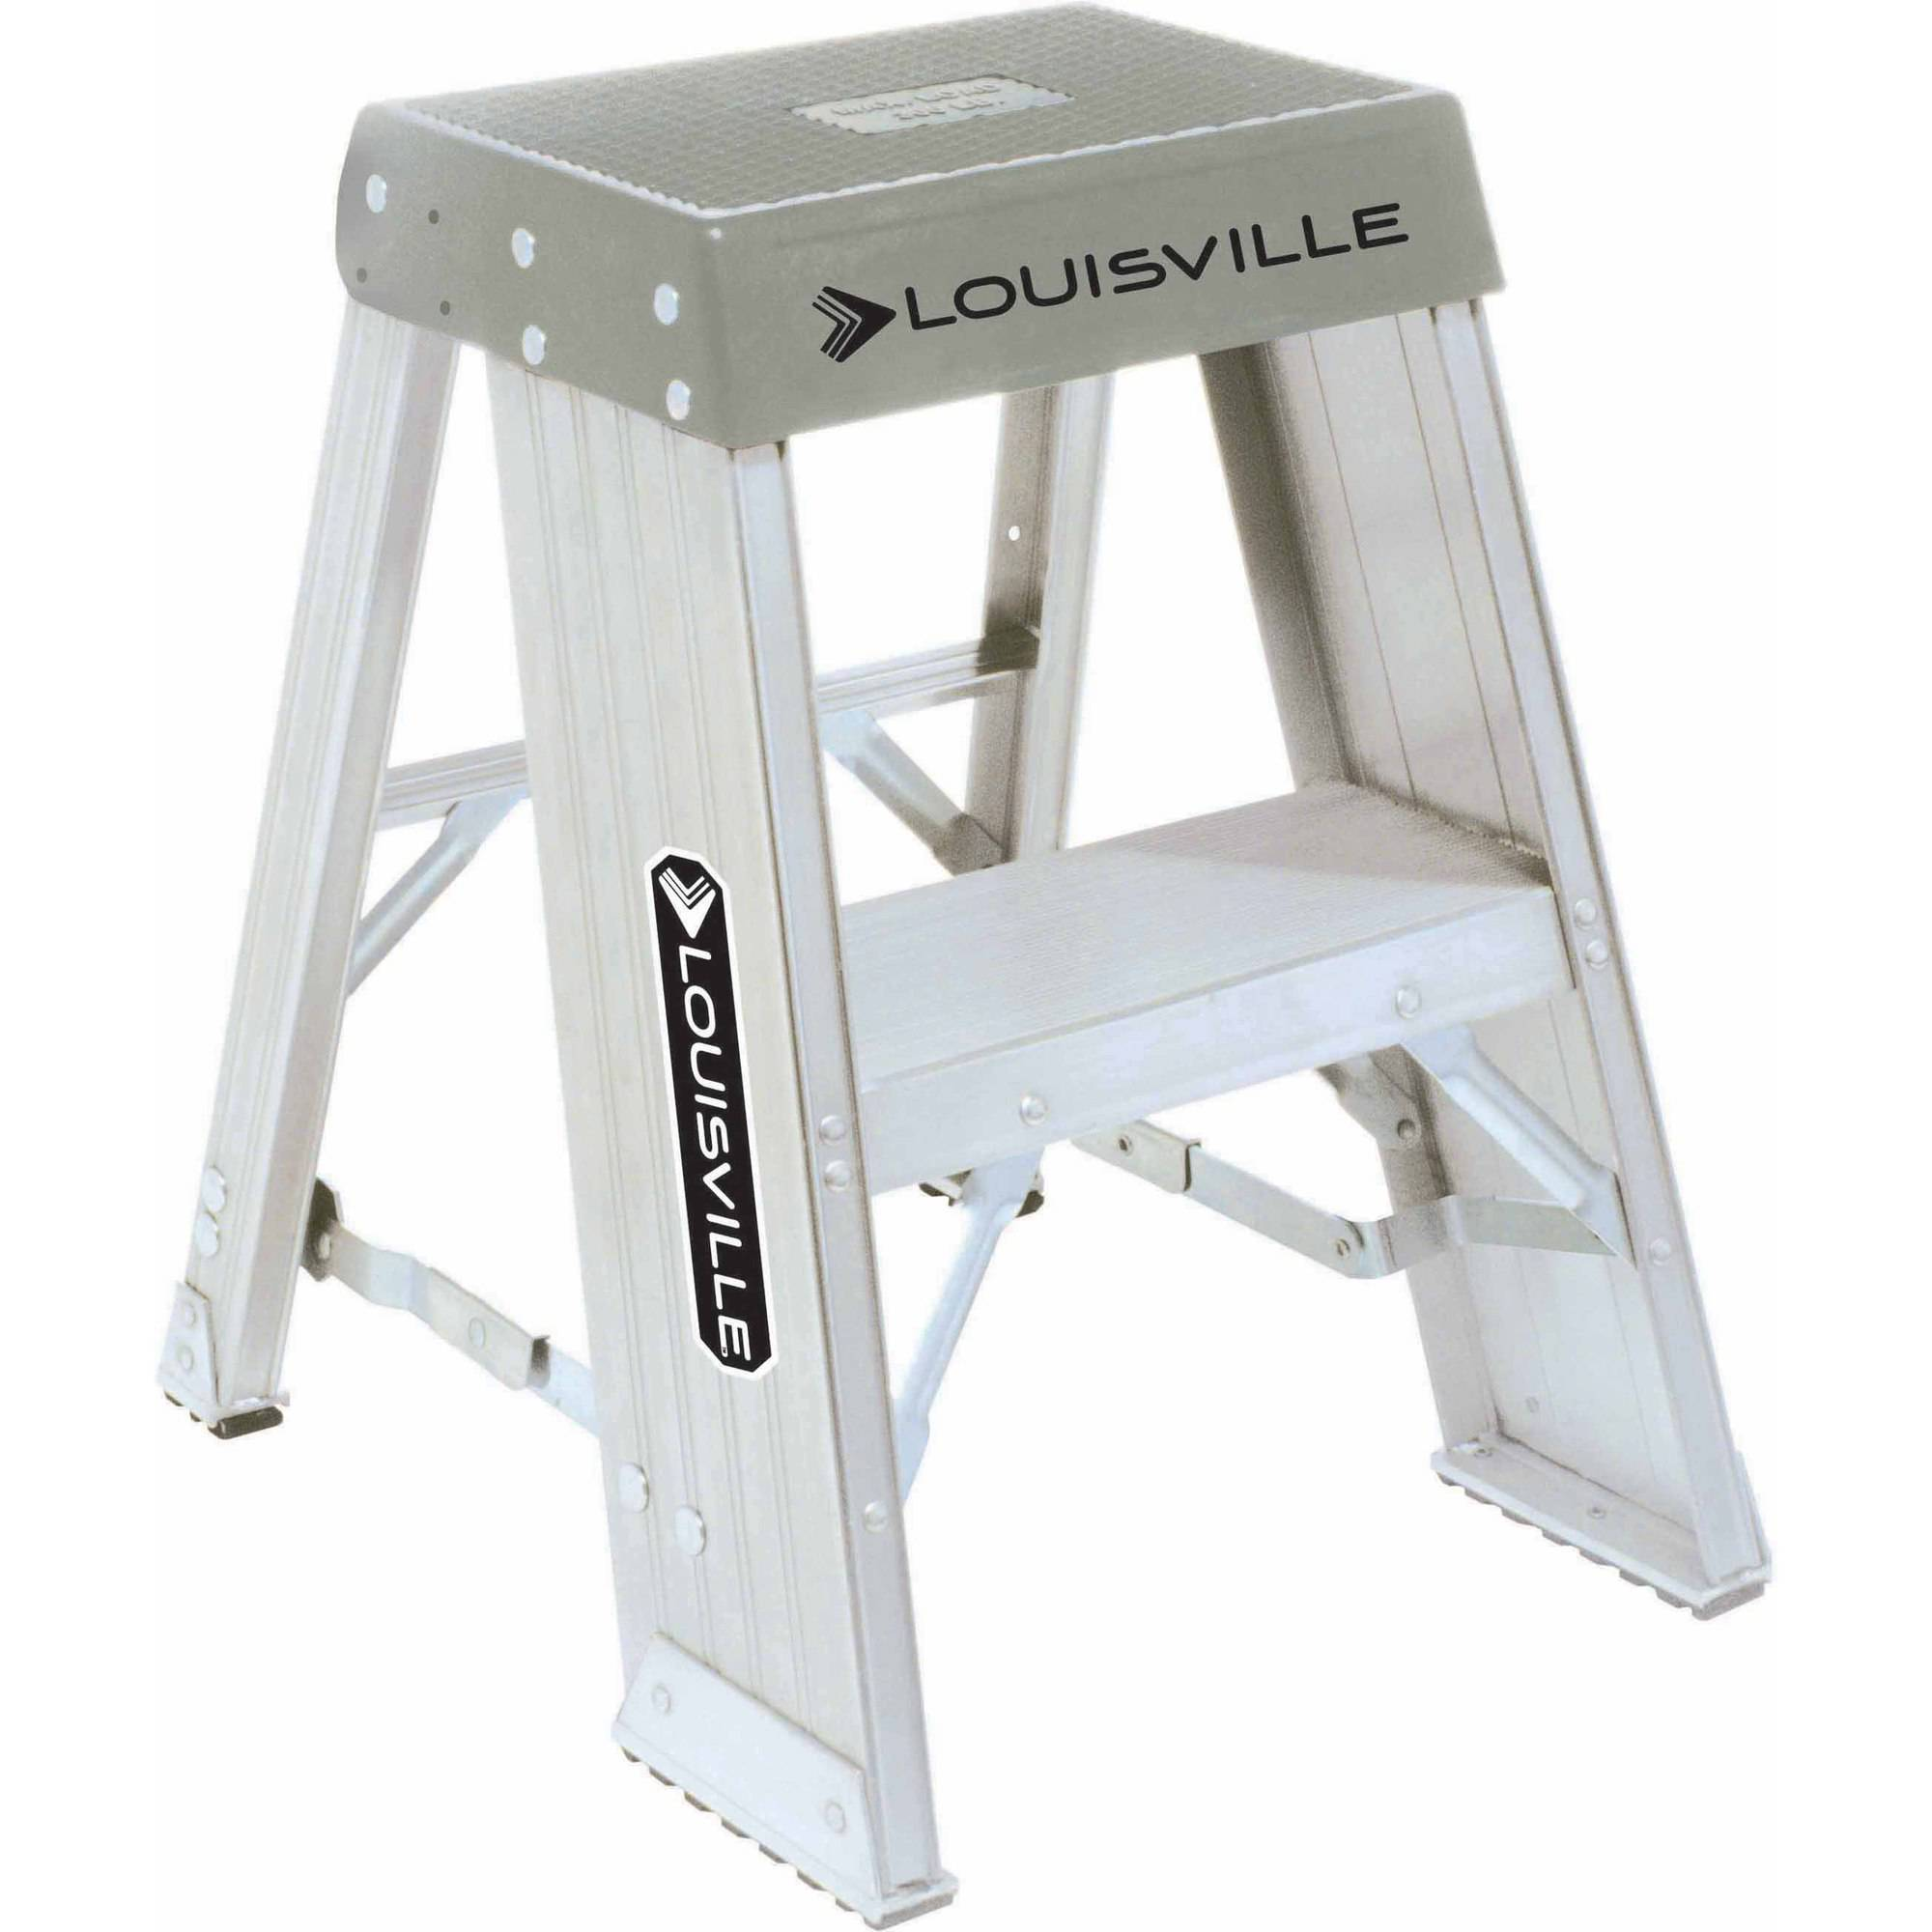 Louisville Ladder AY8002 2 ft. Aluminum Step Stool, Type IA, 300 Lbs Load Capacity